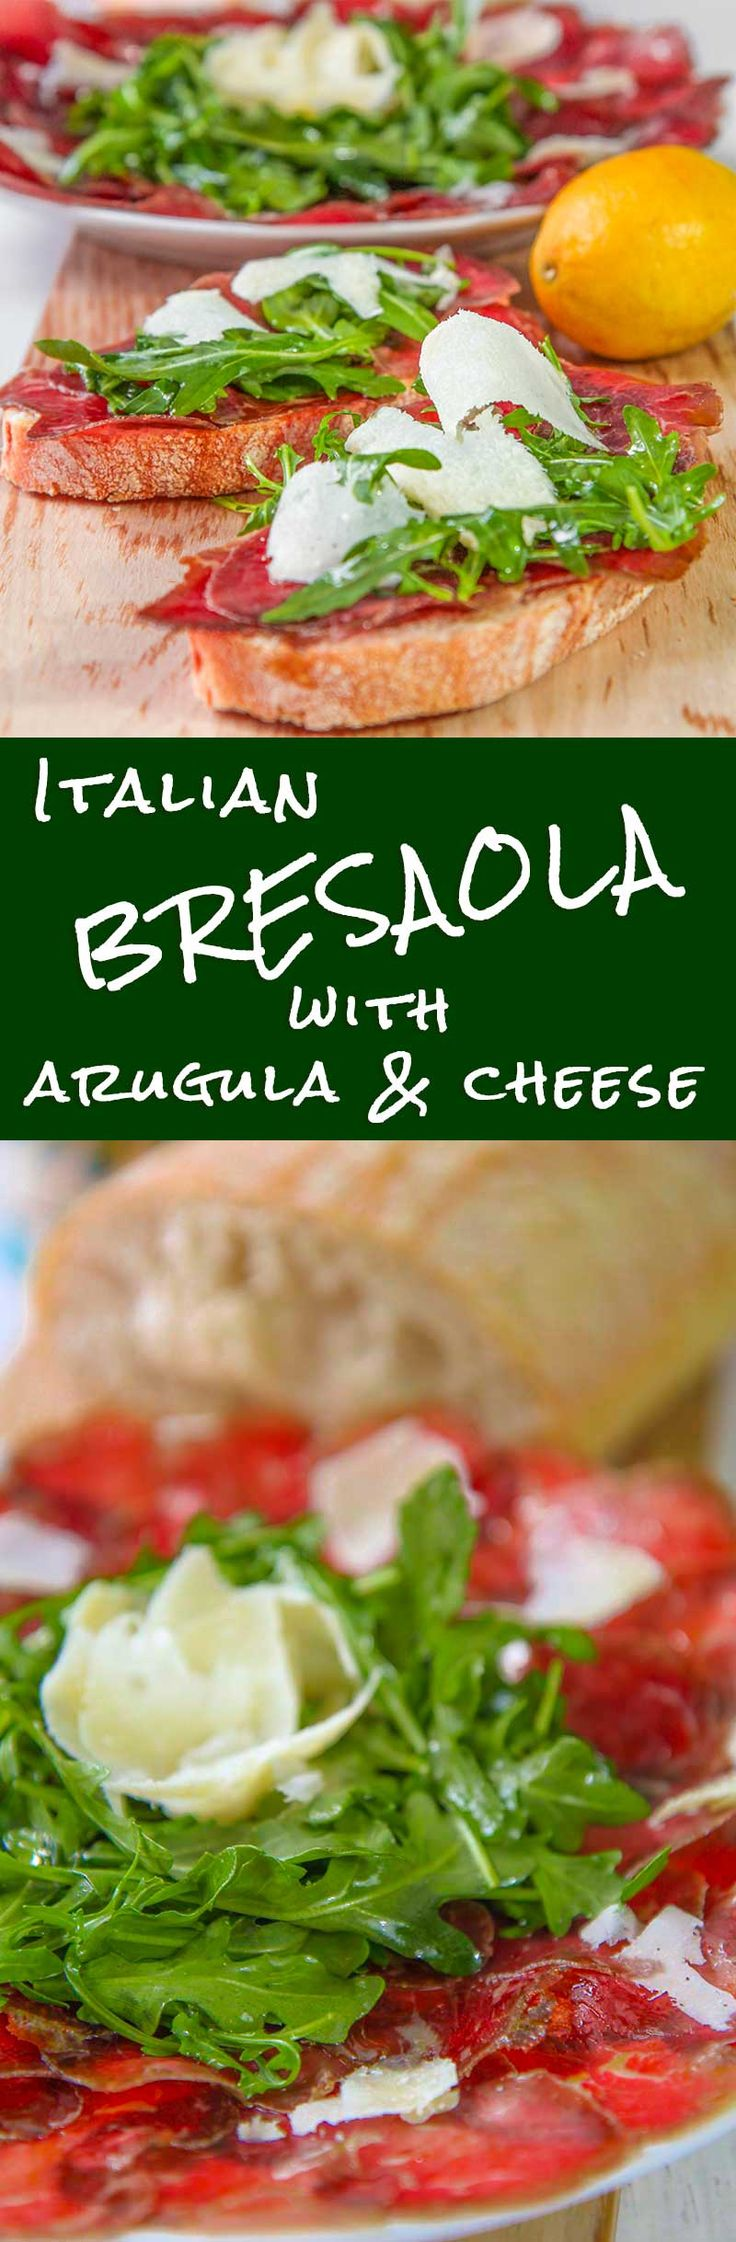 ITALIAN BRESAOLA SALAD with arugula and cheese - Bresaola salad is a great Italian cured meat. It is perfect combined with Parmigiano Reggiano cheese and baby arugula. When I desire serving a quick and easy dish, that recalls my own county, this recipe is my choice. Try the bresaola on also with olives, truffles or Asiago cheese, it is delicious! - sandwich tuscan bread recipes healthy appetizer beef